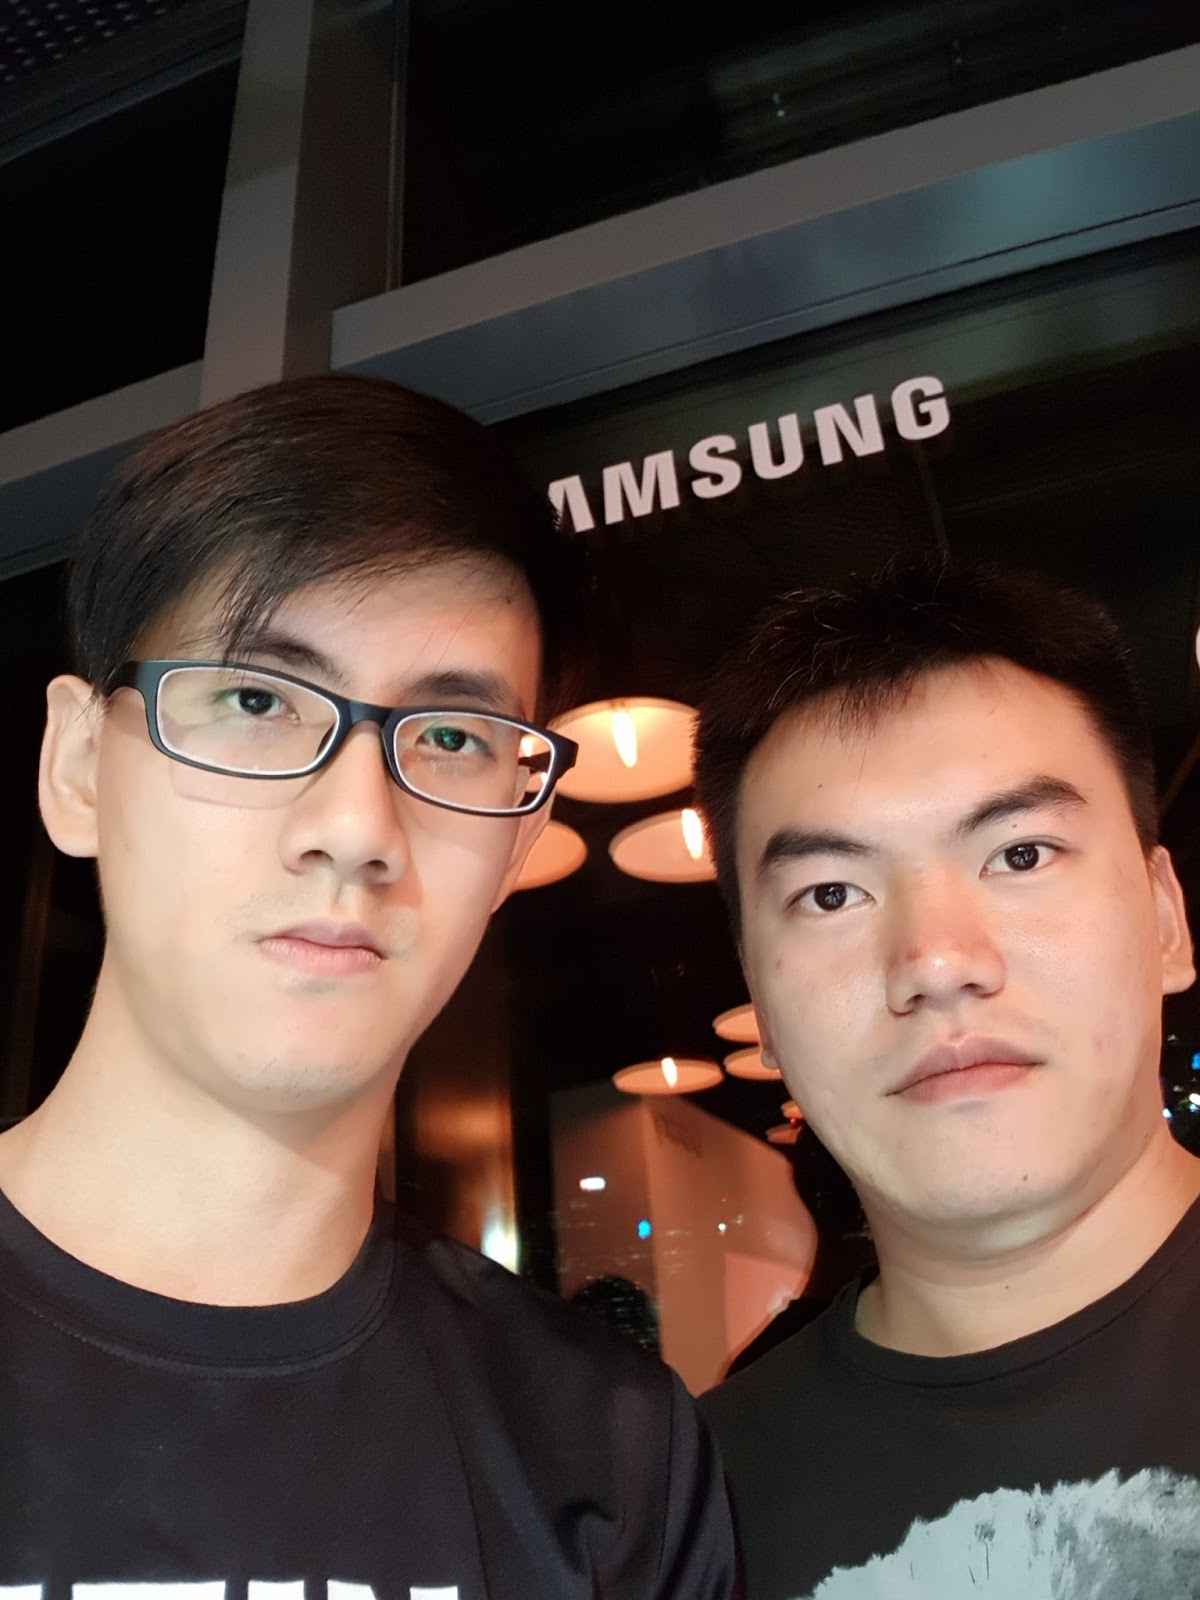 how to take a distant selfie on samsung s8